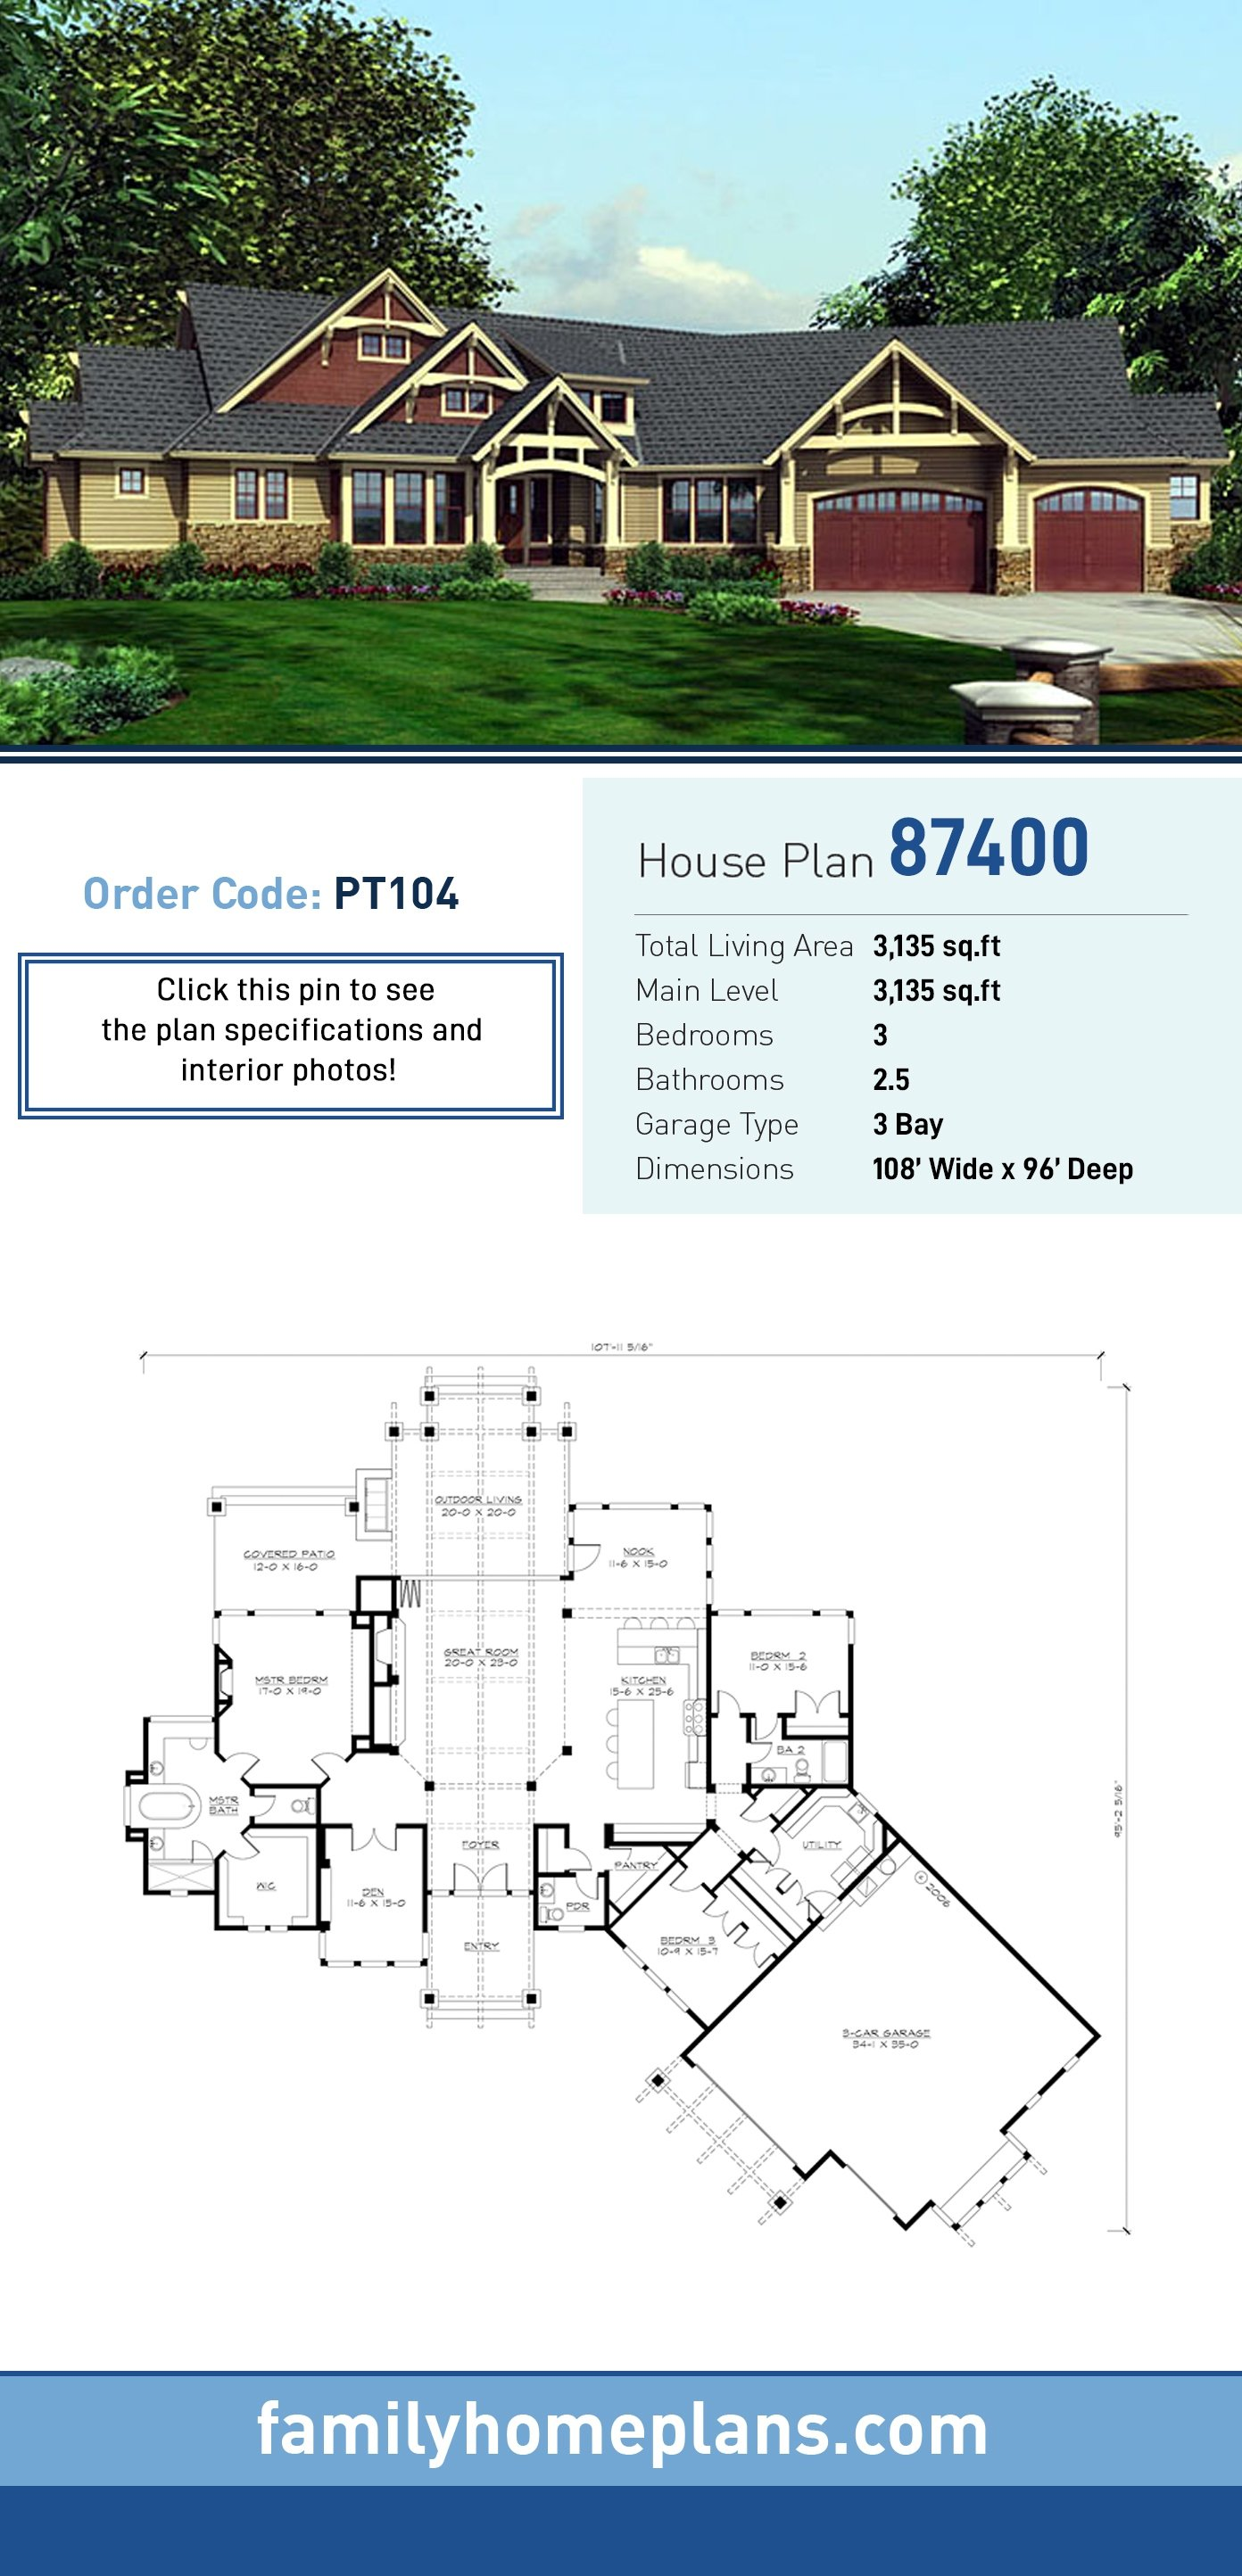 Craftsman House Plan 87400 with 3 Beds , 3 Baths , 3 Car Garage